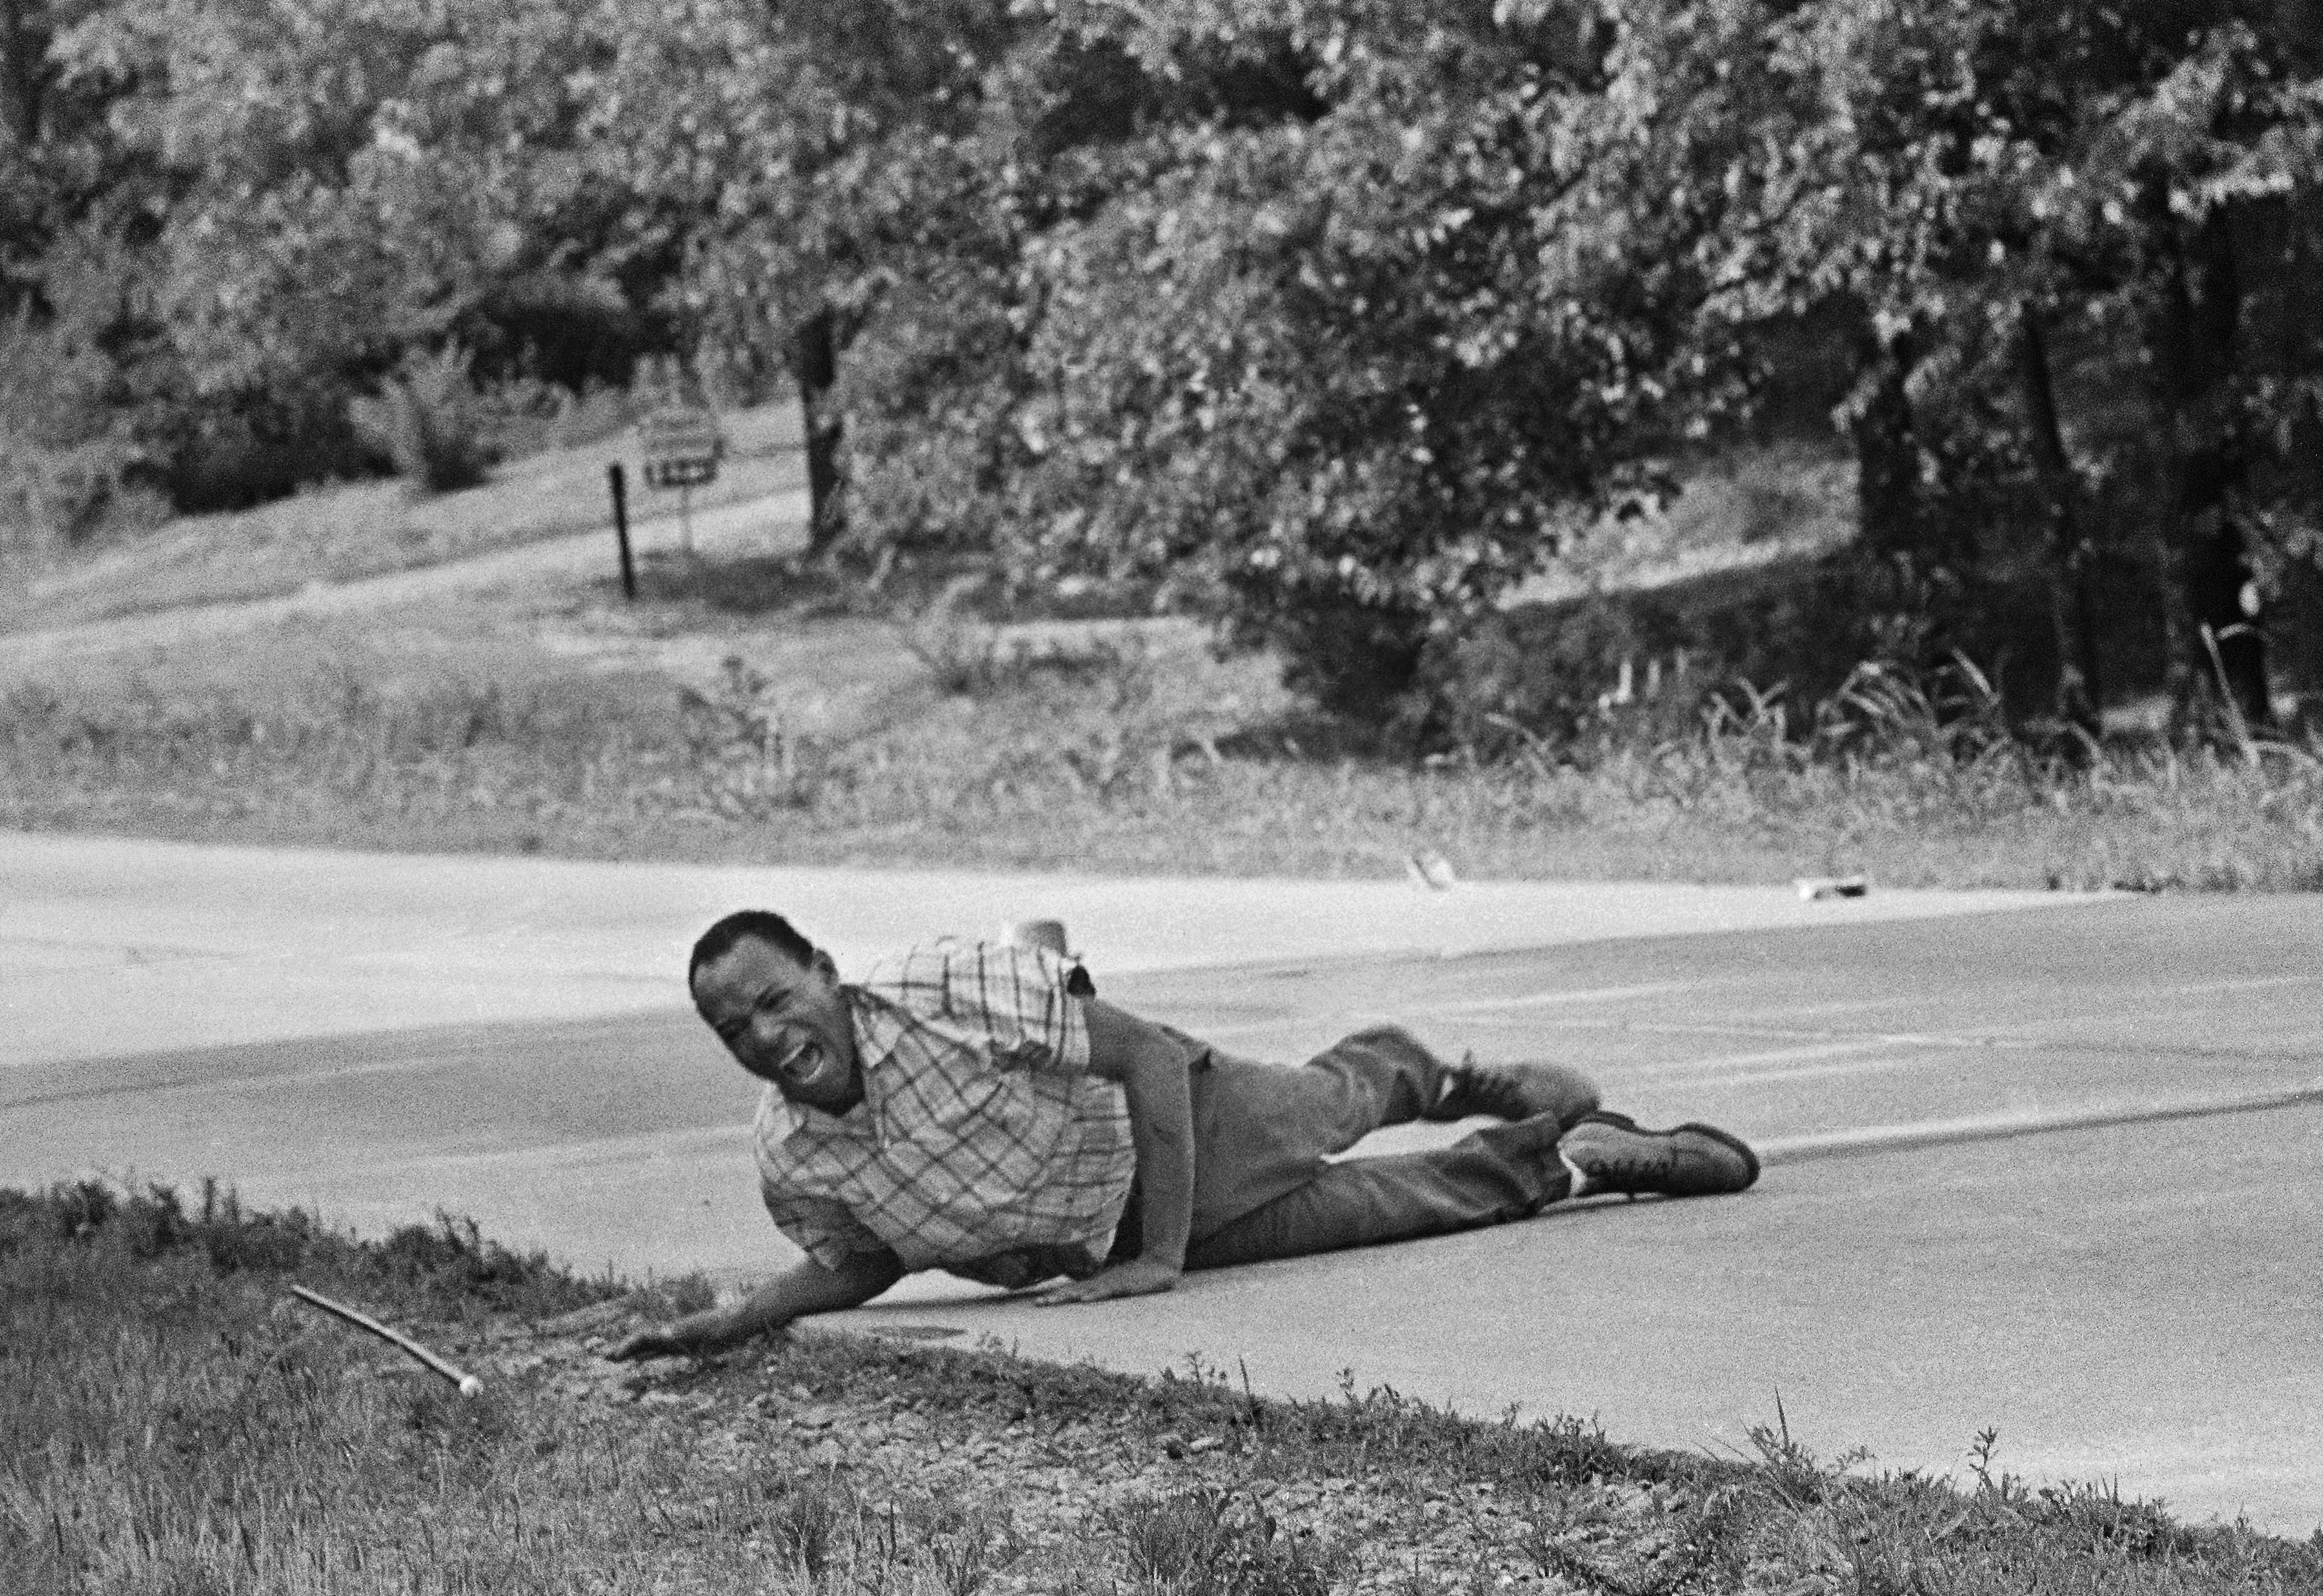 Civil rights activist James Meredith grimaces in pain as he pulls himself across Highway 51 after being shot in Hernando, Miss., June 6, 1966. Meredith was leading the March Against Fear to encourage African Americans to exercise their voting rights when he was shot. He completed the march from Memphis, Tenn., to Jackson, Miss., after treatment of his wounds. (AP Photo/Jack Thornell)